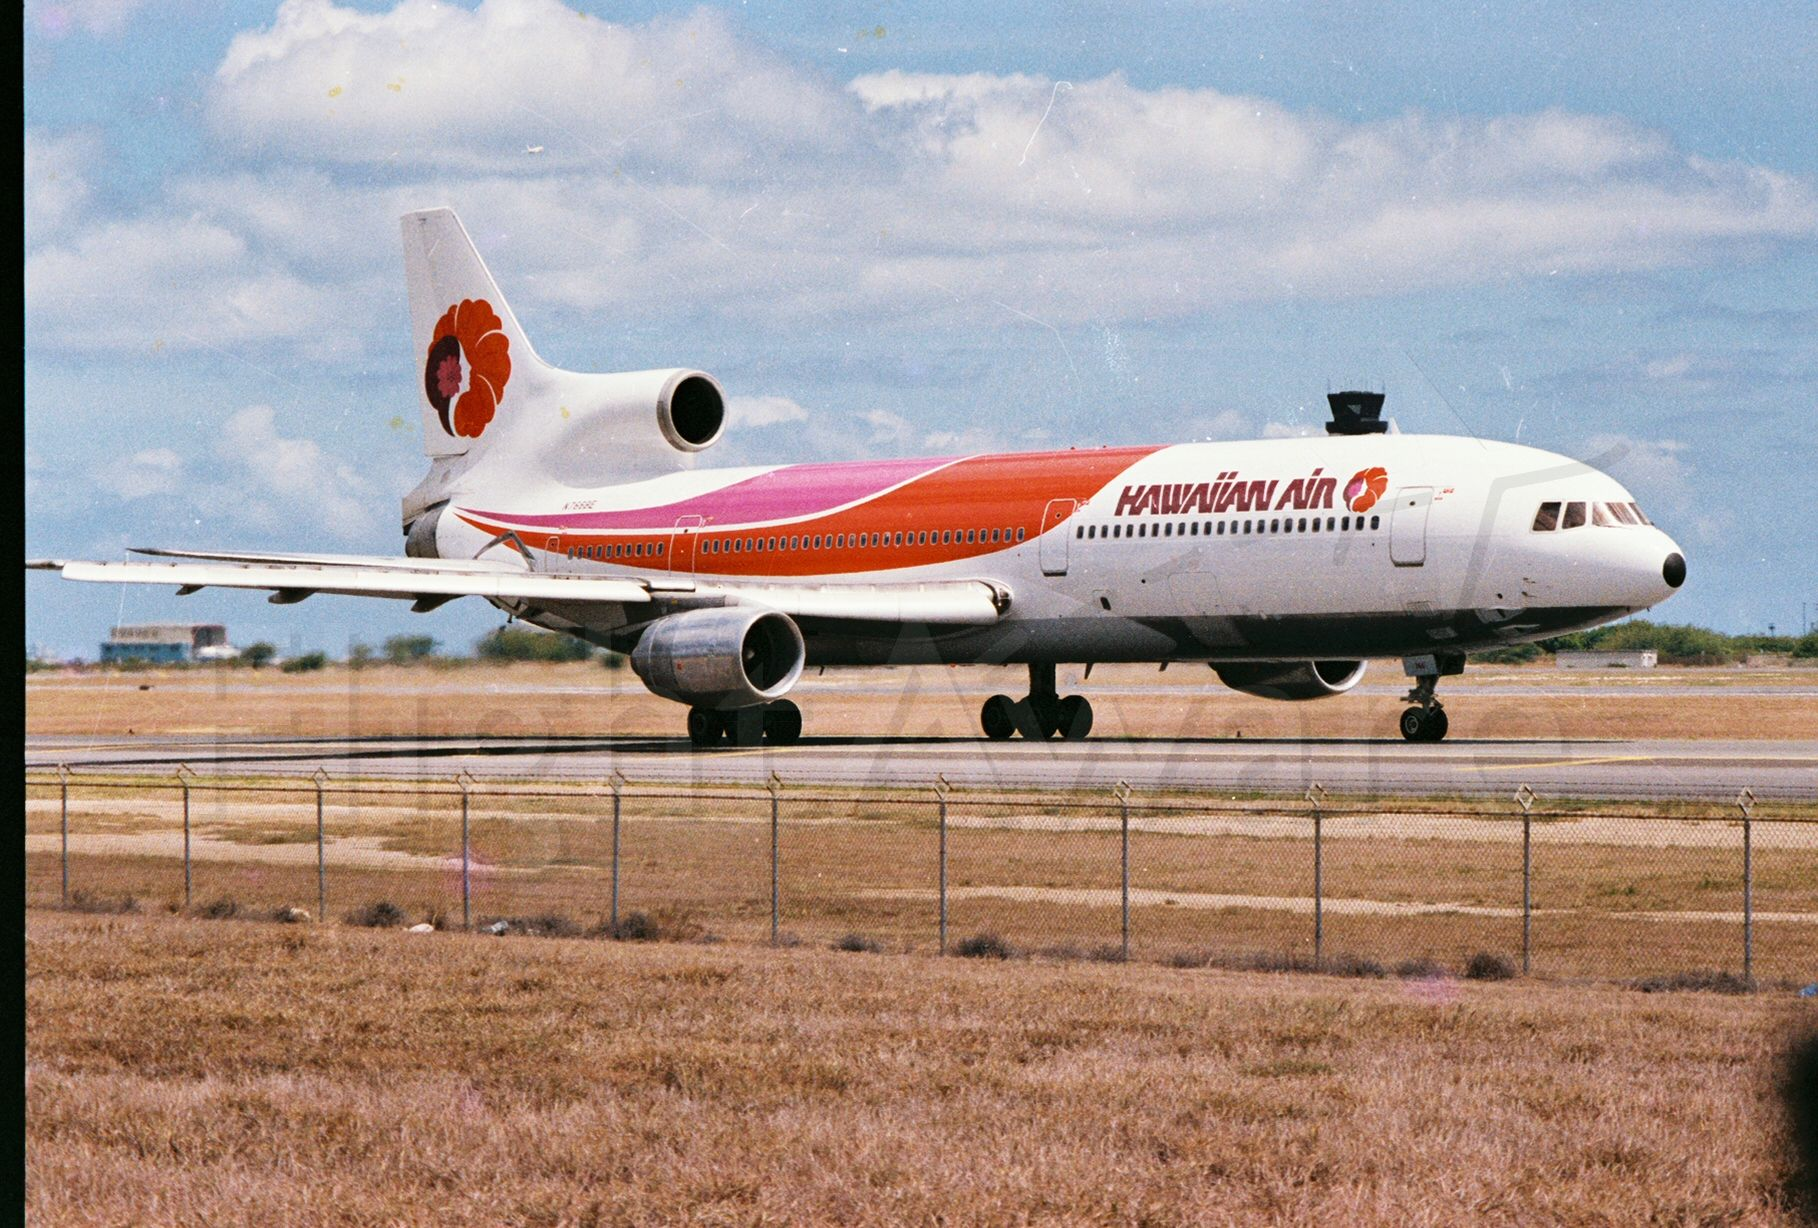 Lockheed L-1011 TriStar — - A blast from the past! A Hawaiian Air Tristar taxiing at PHNL. Picture taken at Hickam AFB in 1987.